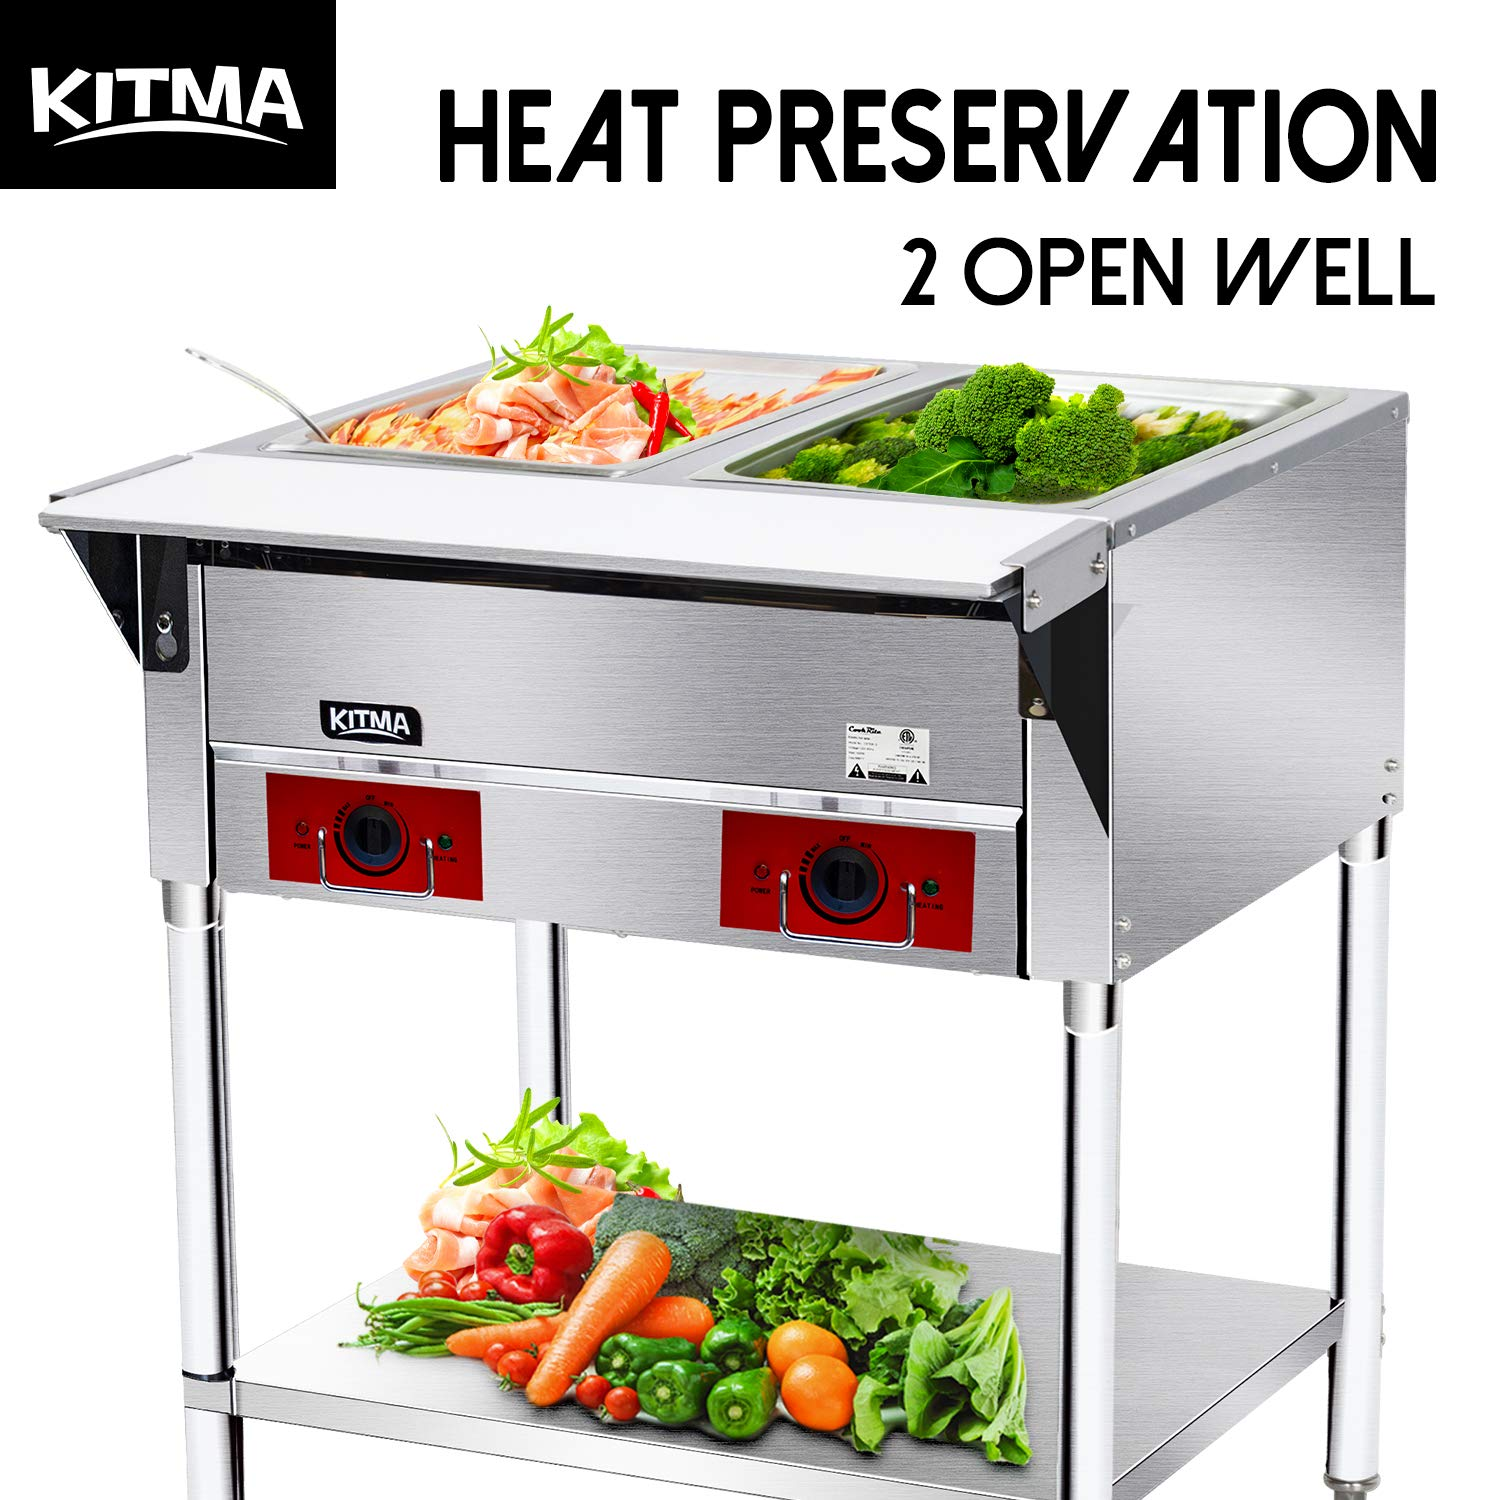 120 V Commercial Electric Food Warmer - Kitma 2 Pot Stainless Steel Steam Table, Buffet Server for Catering and Restaurants by KITMA